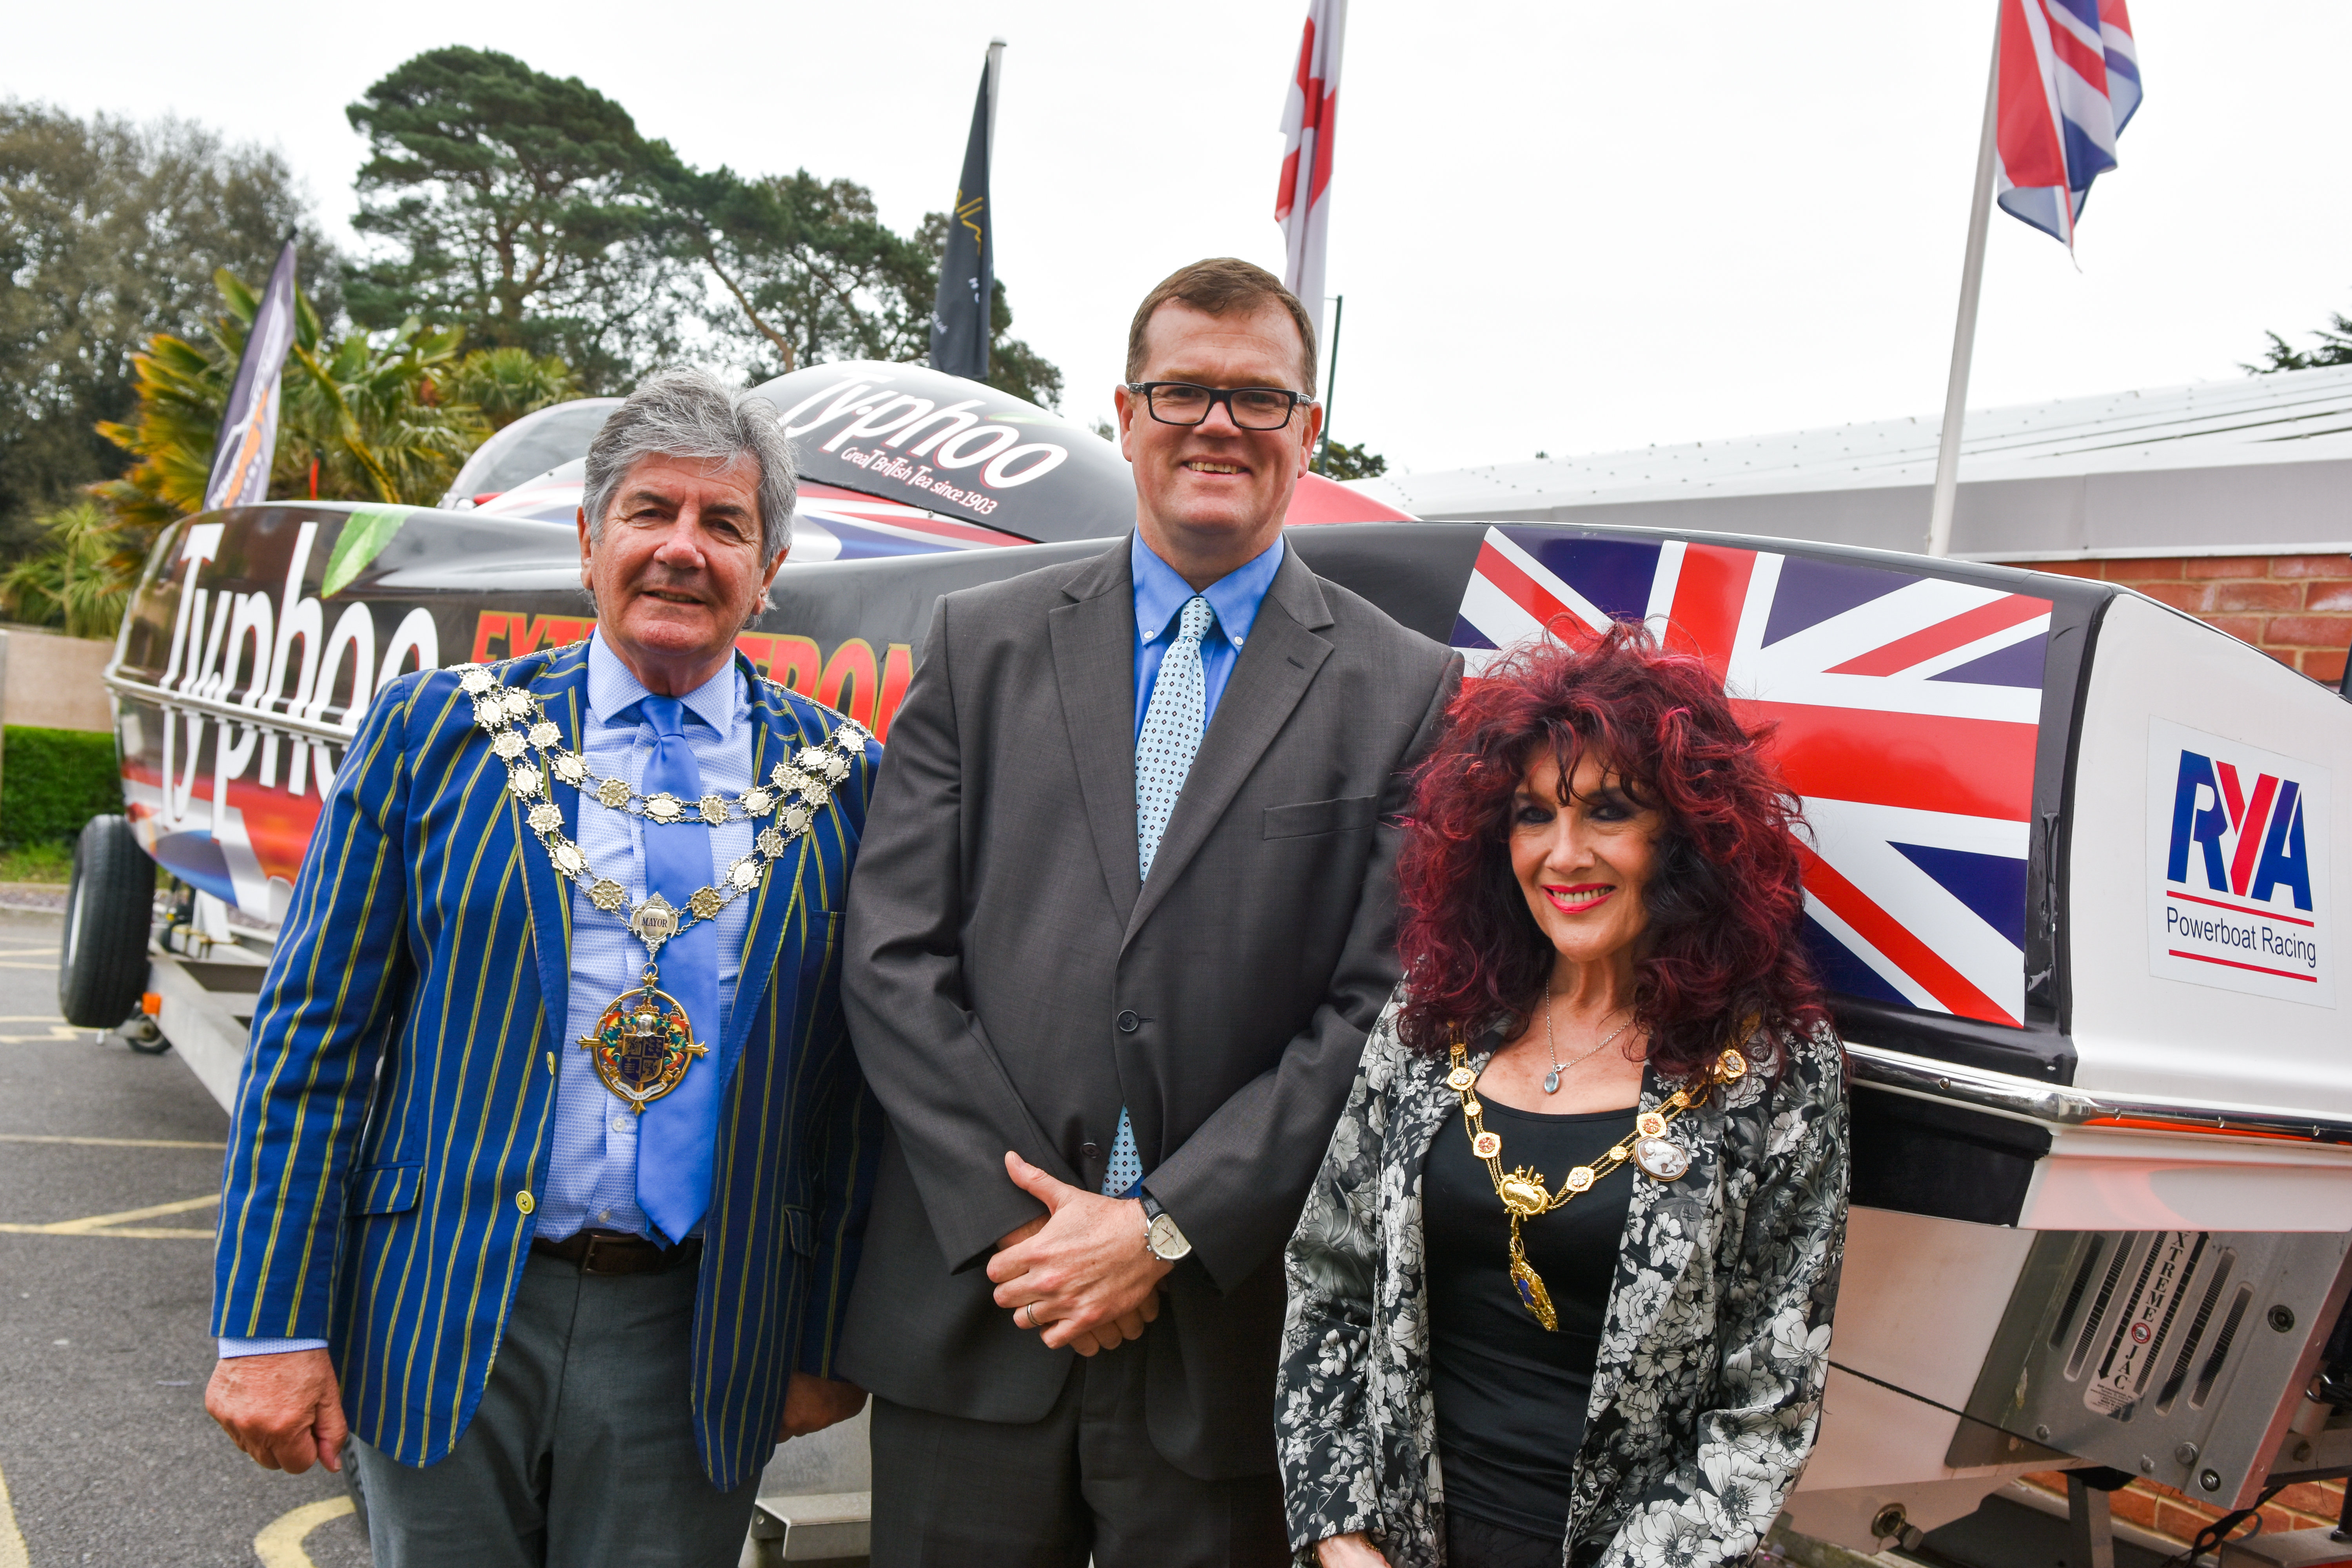 Robert Wicks with The Mayor & Mayoress - A P1 Panther boat outside the event venue